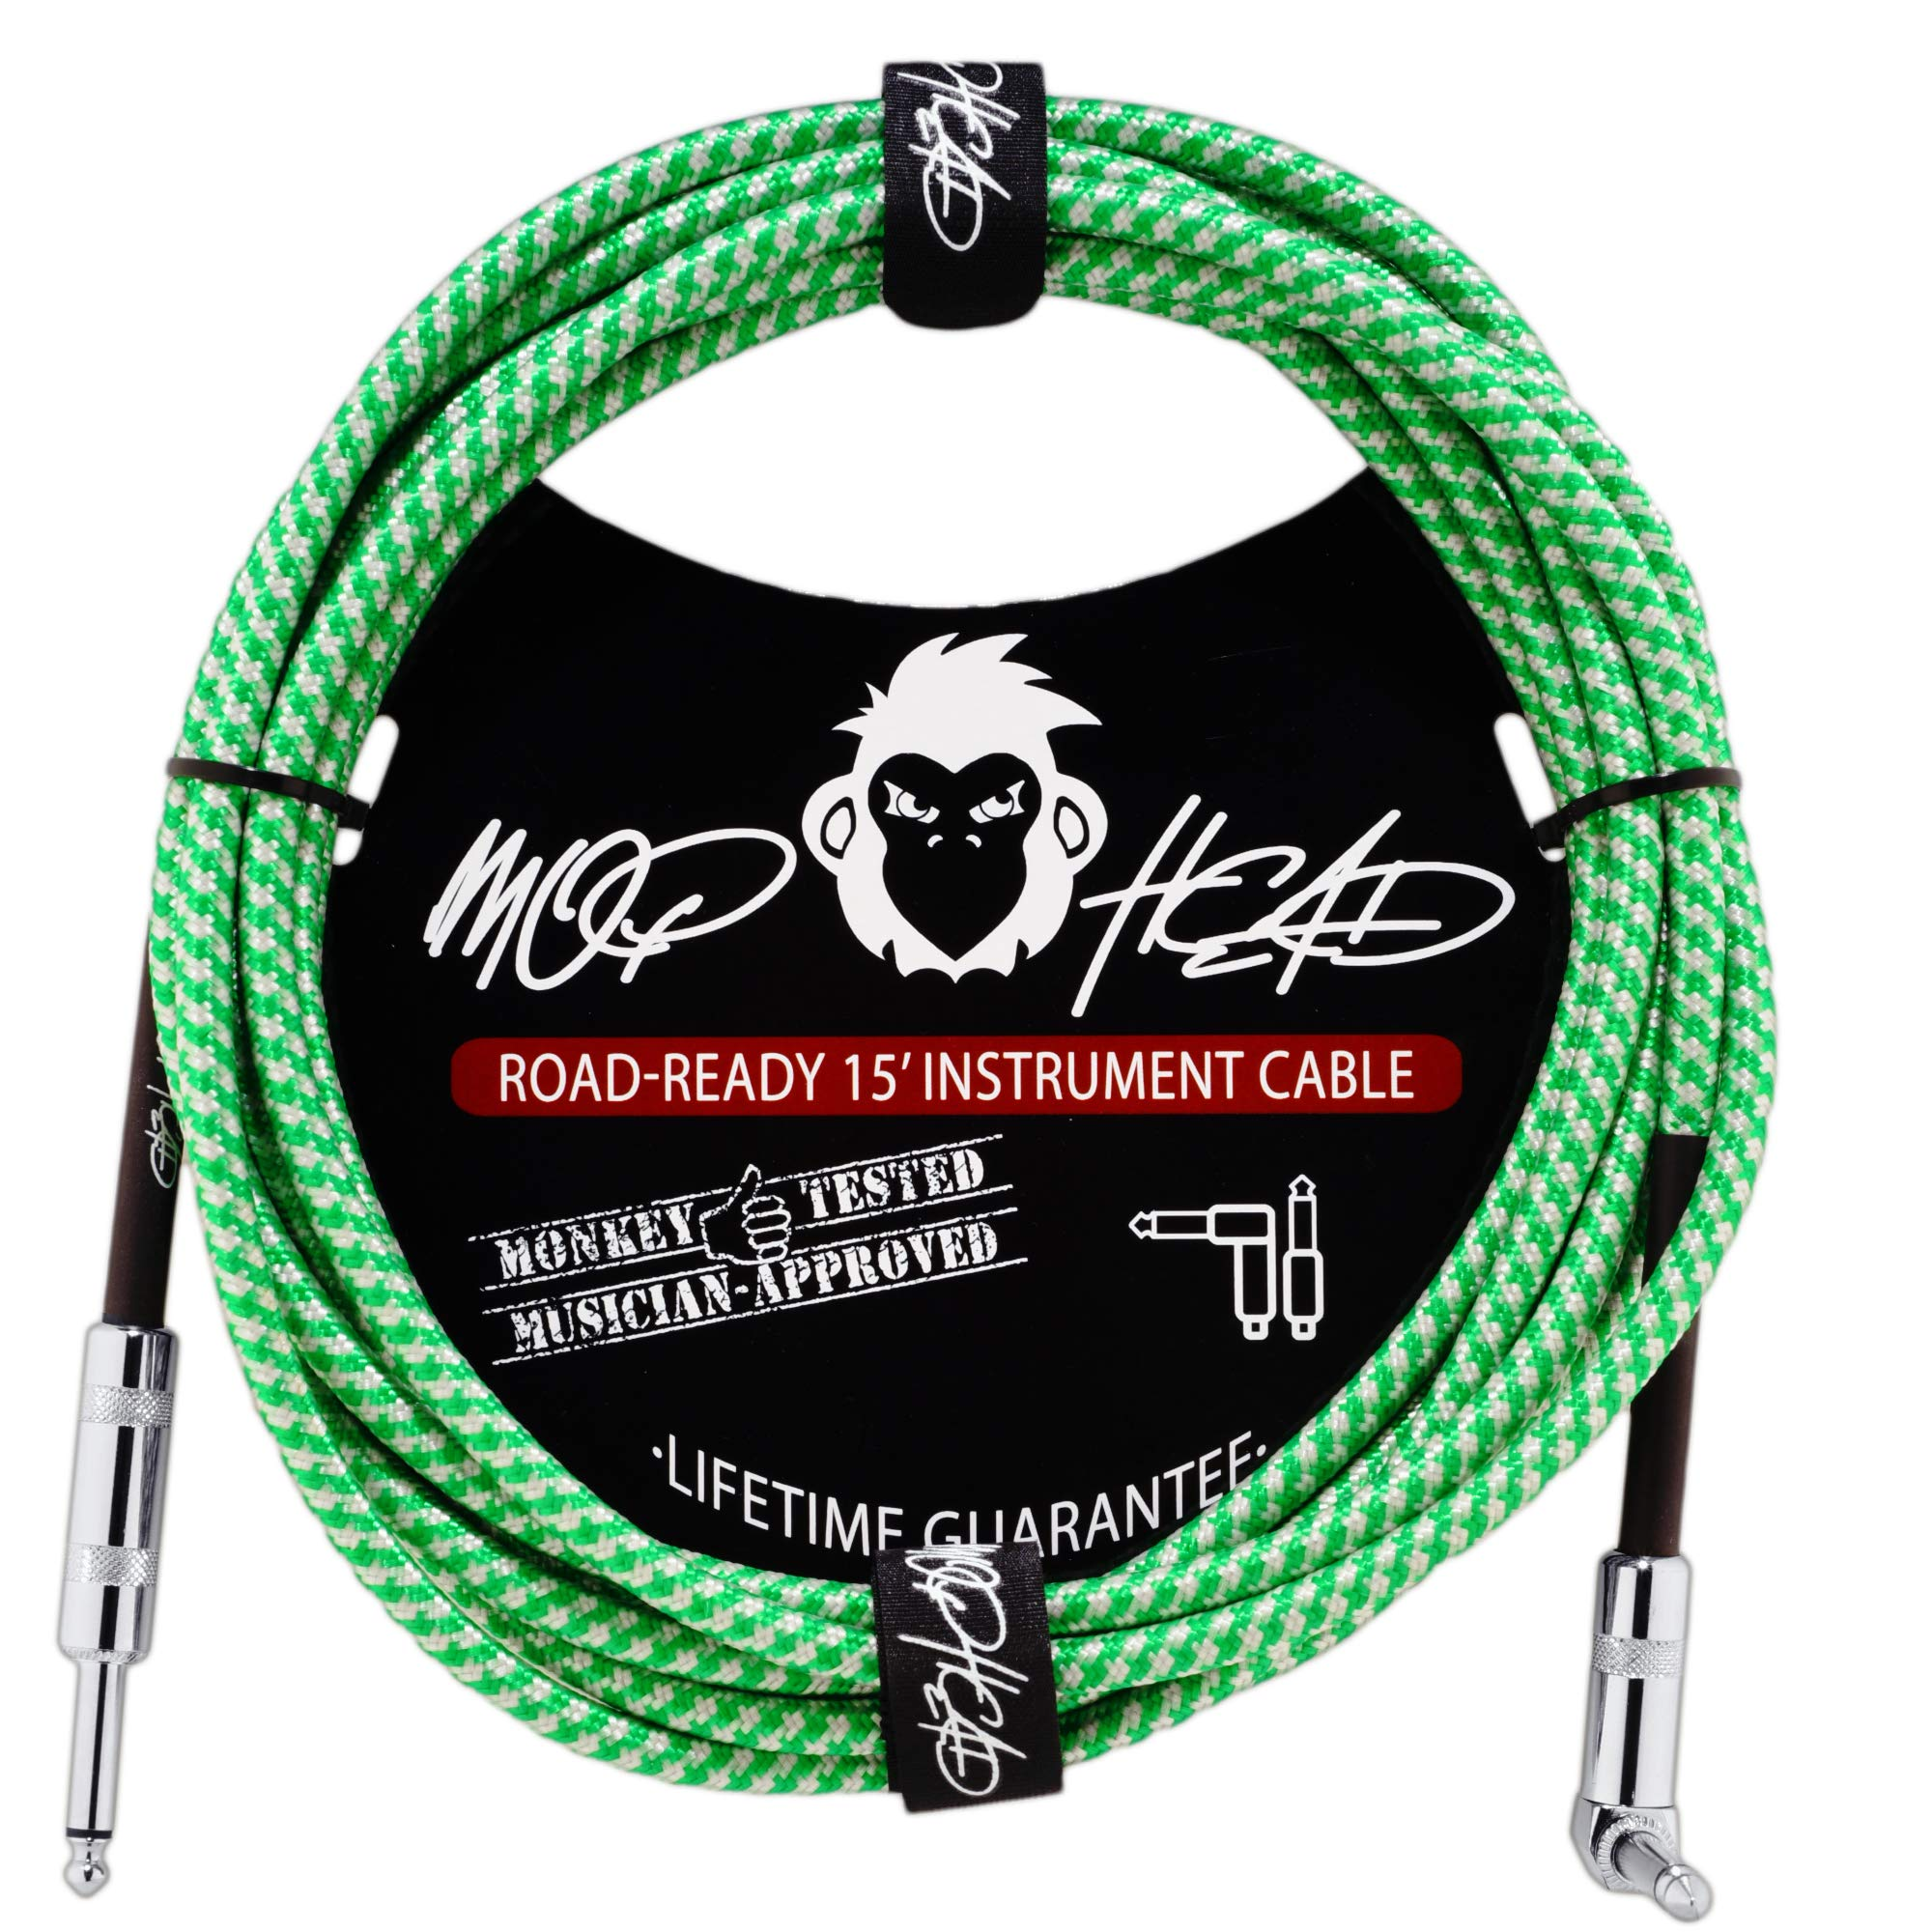 Mophead 15 Foot Double Insulated and Road Ready Braided 1/4'' TS to 1/4'' TS Guitar and Bass Instrument Cable Right Angle Green and White